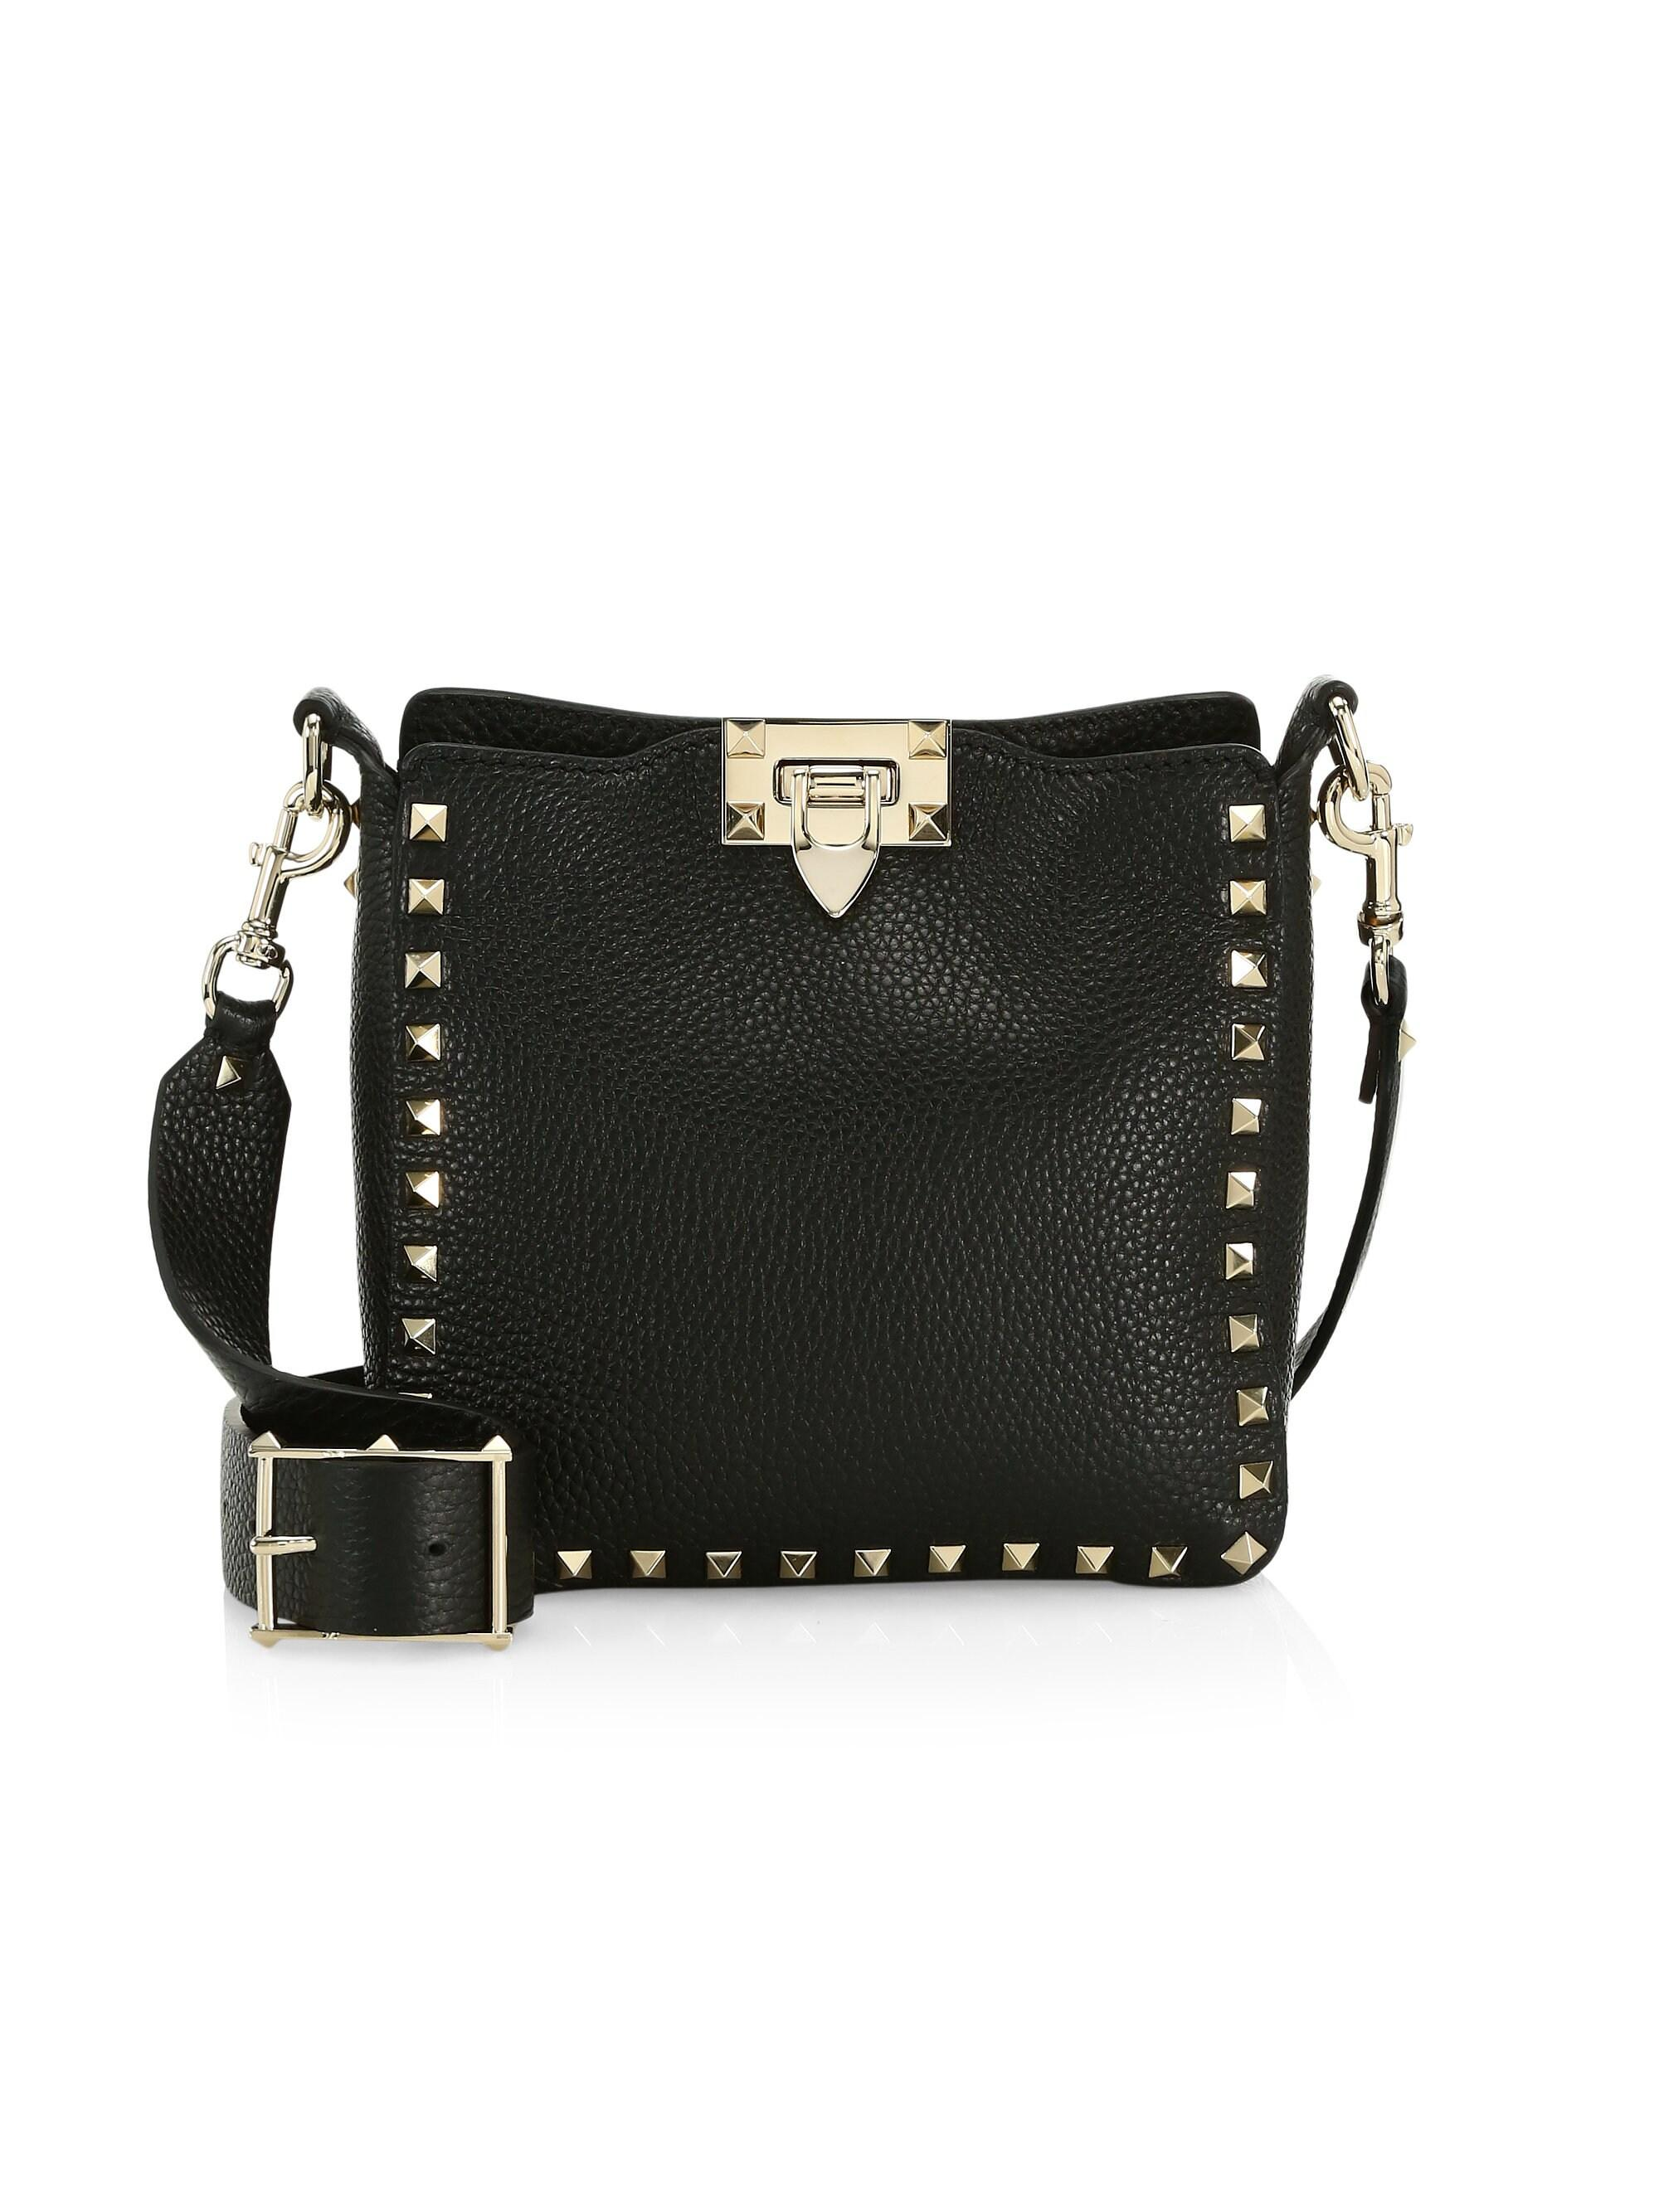 6cc8116977e Valentino Rockstud Mini Hobo Crossbody Bag in Black - Lyst